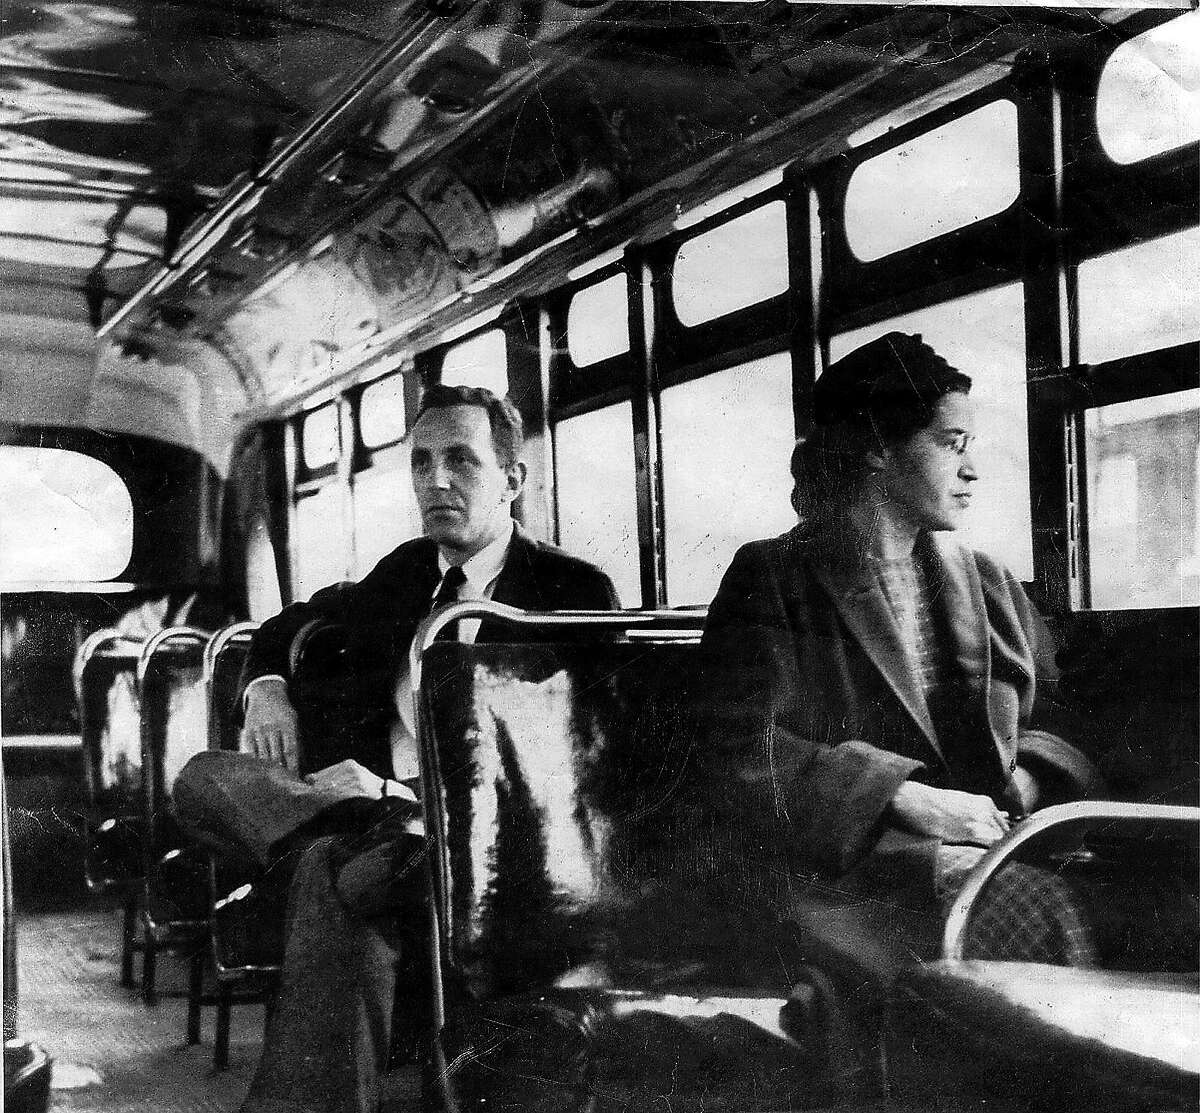 ** FILE ** This undated file photo shows Rosa Parks riding on the Montgomery Area Transit System bus. Parks, whose refusal to give up her bus seat to a white man sparked the modern civil rights movement, died Monday Oct. 24, 2005. She was 92. (AP Photo/Montgomery Advertiser)